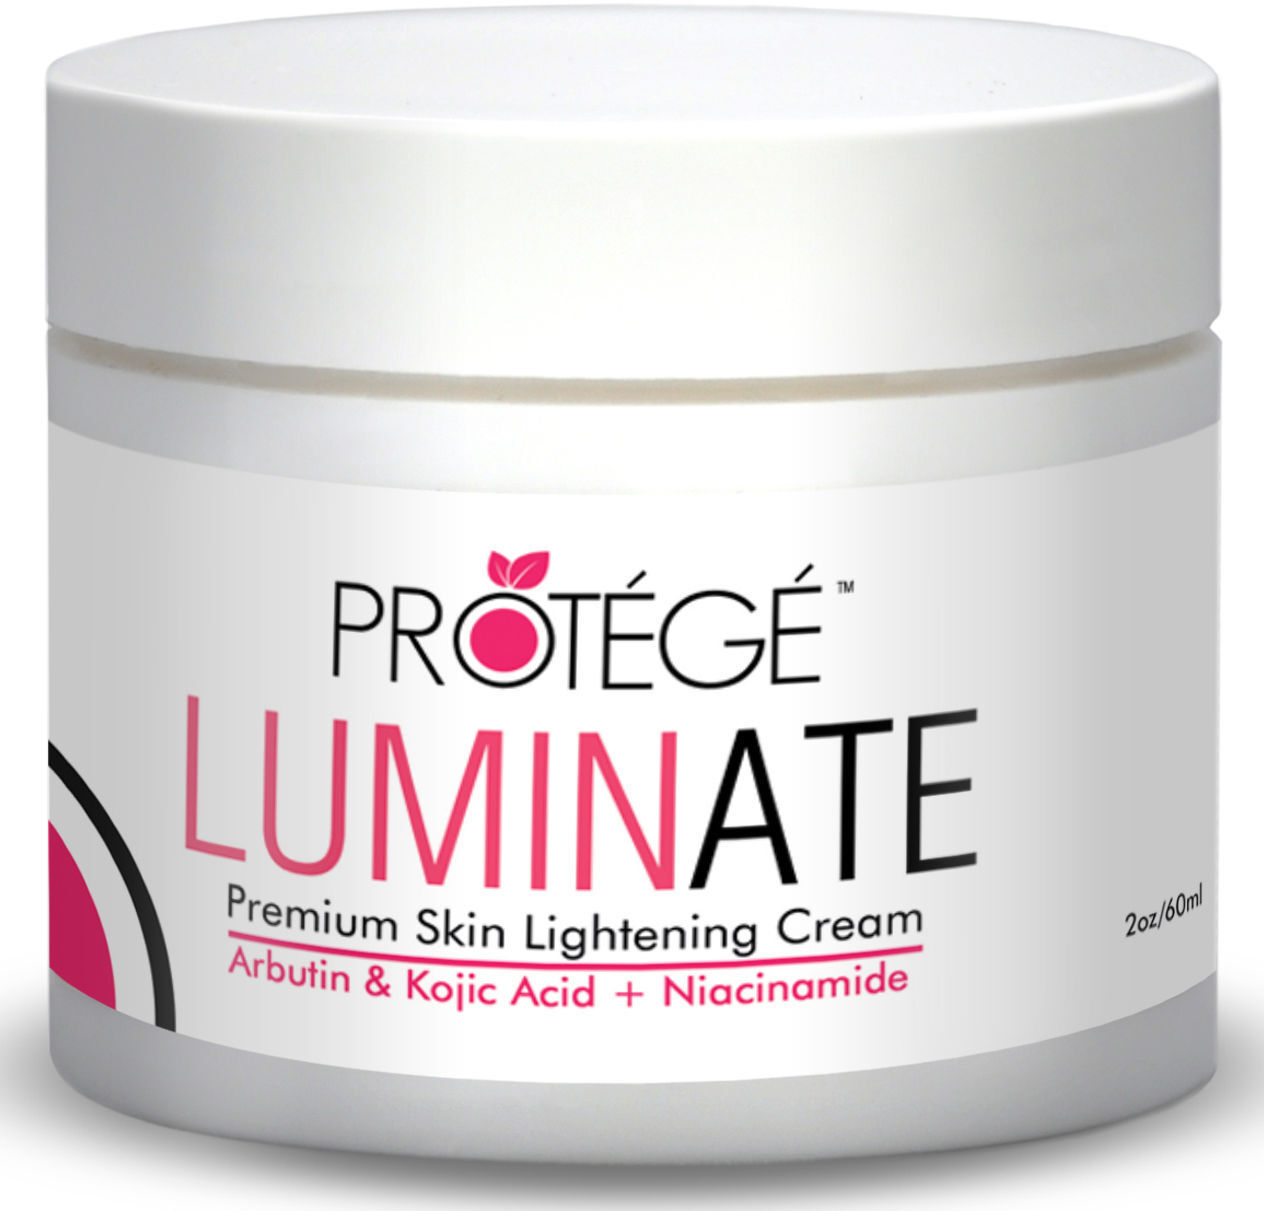 Top 10 Lightening Skin Creams Ebay